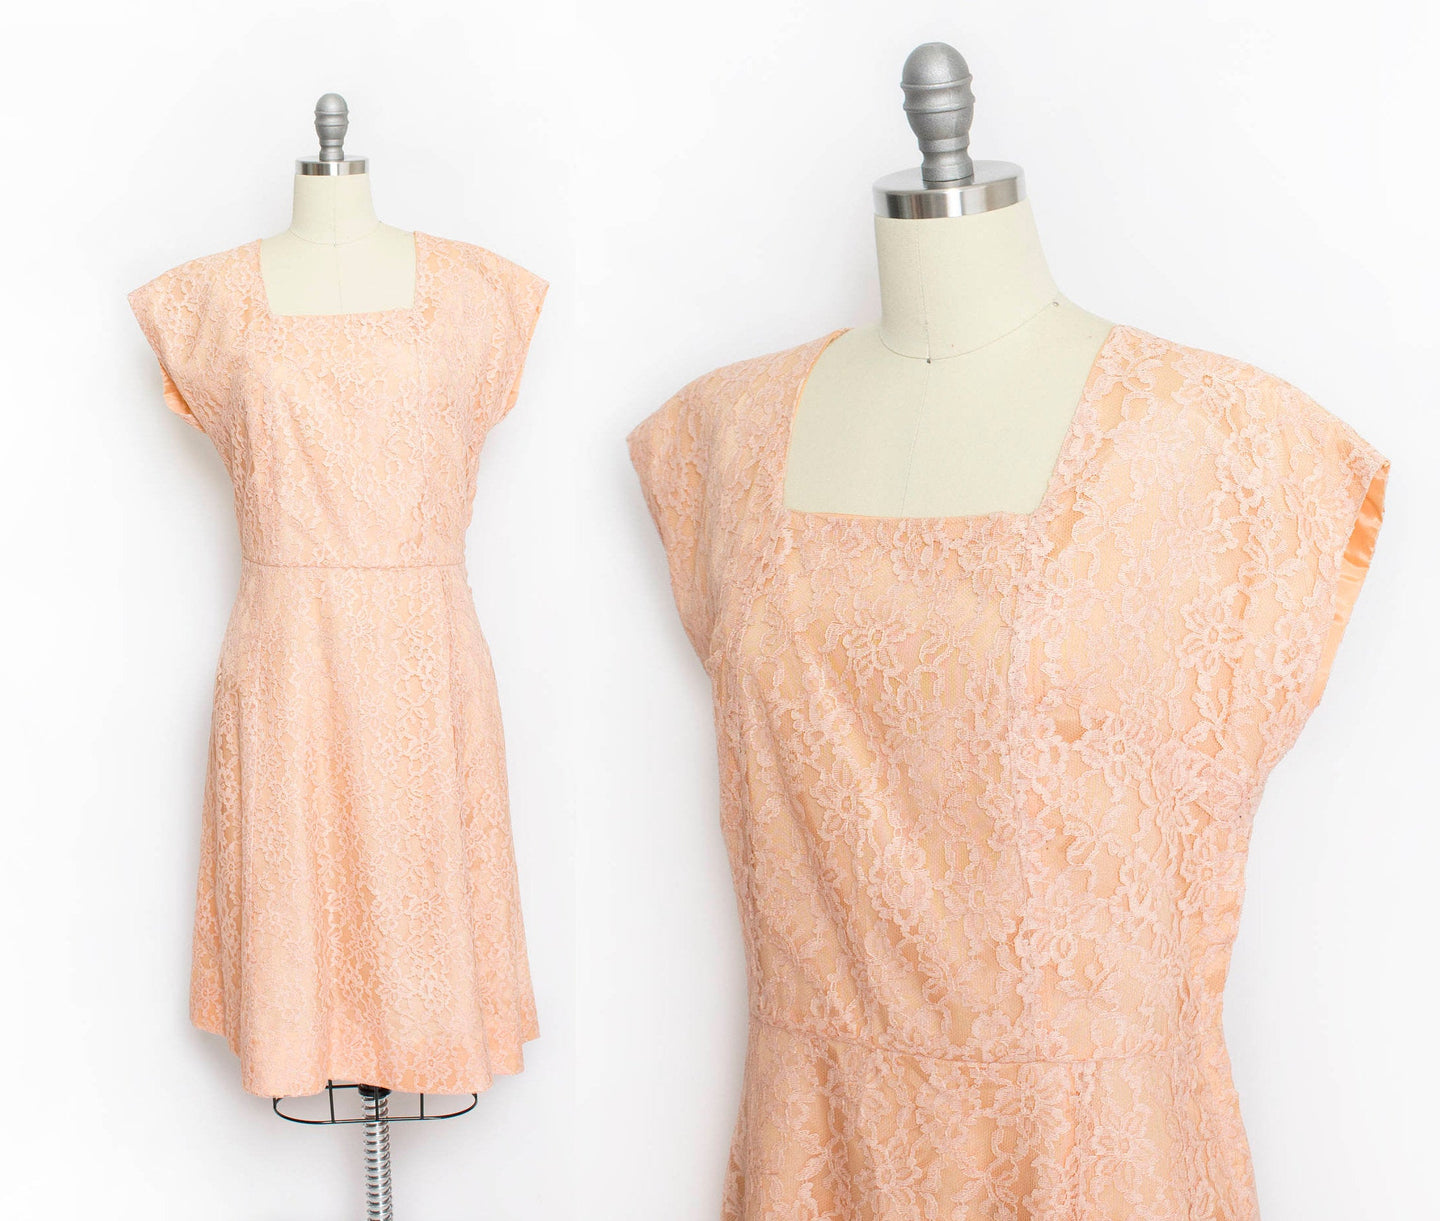 Vintage 50s Dress Champagne Lace Full Skirt Cocktail Party 1960s Large